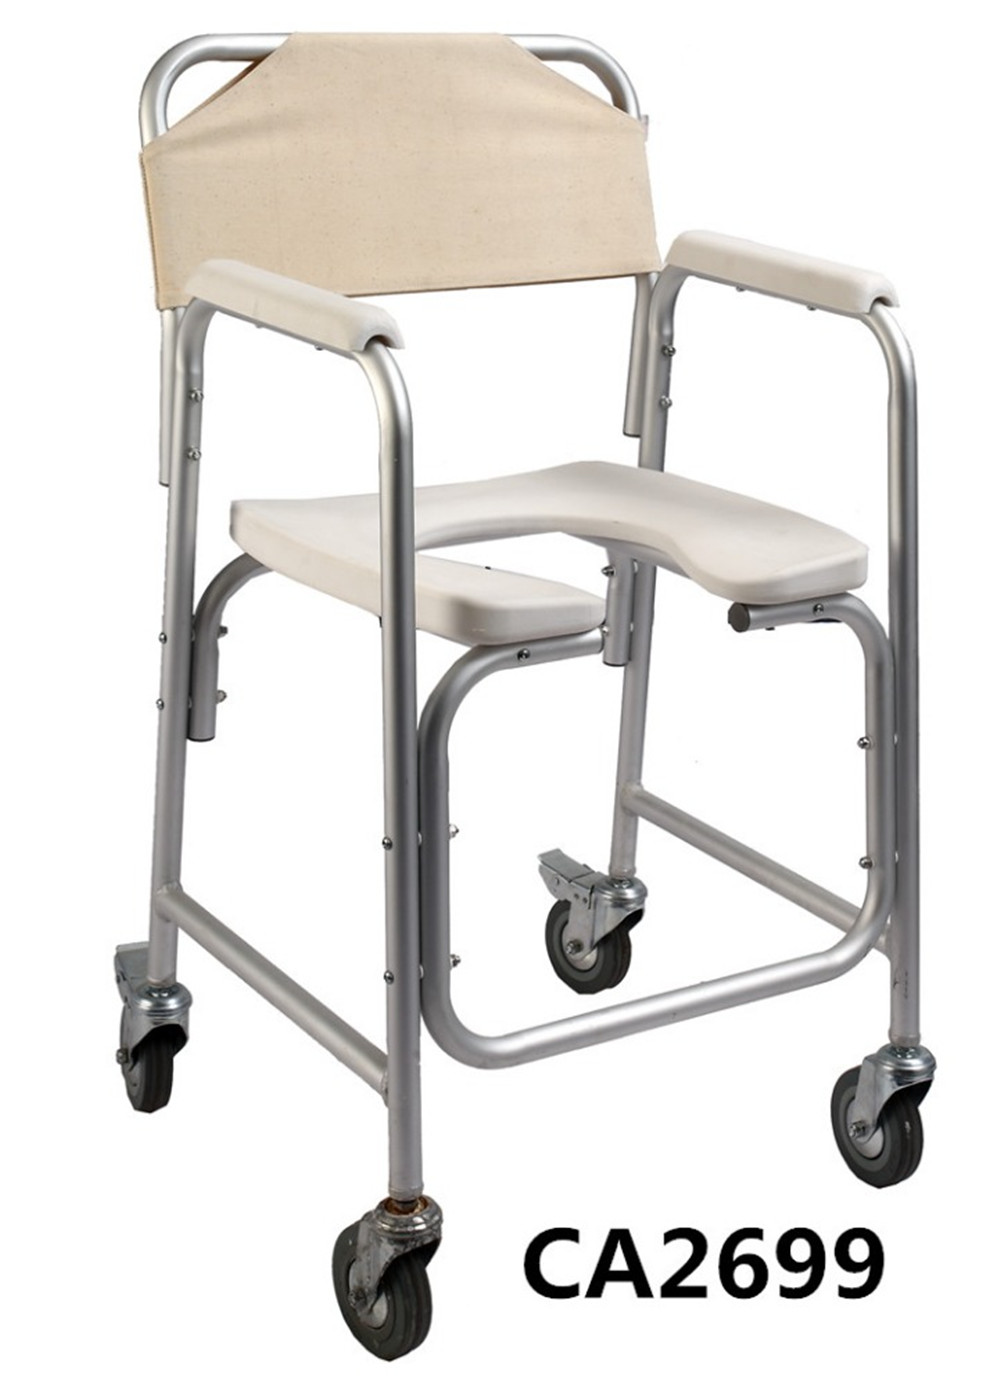 Portable commode folding bedside handicap adult toilet potty chair - Lightweight Commode Chair With Wheels Wheelchair With Toilet With Fda Certificate